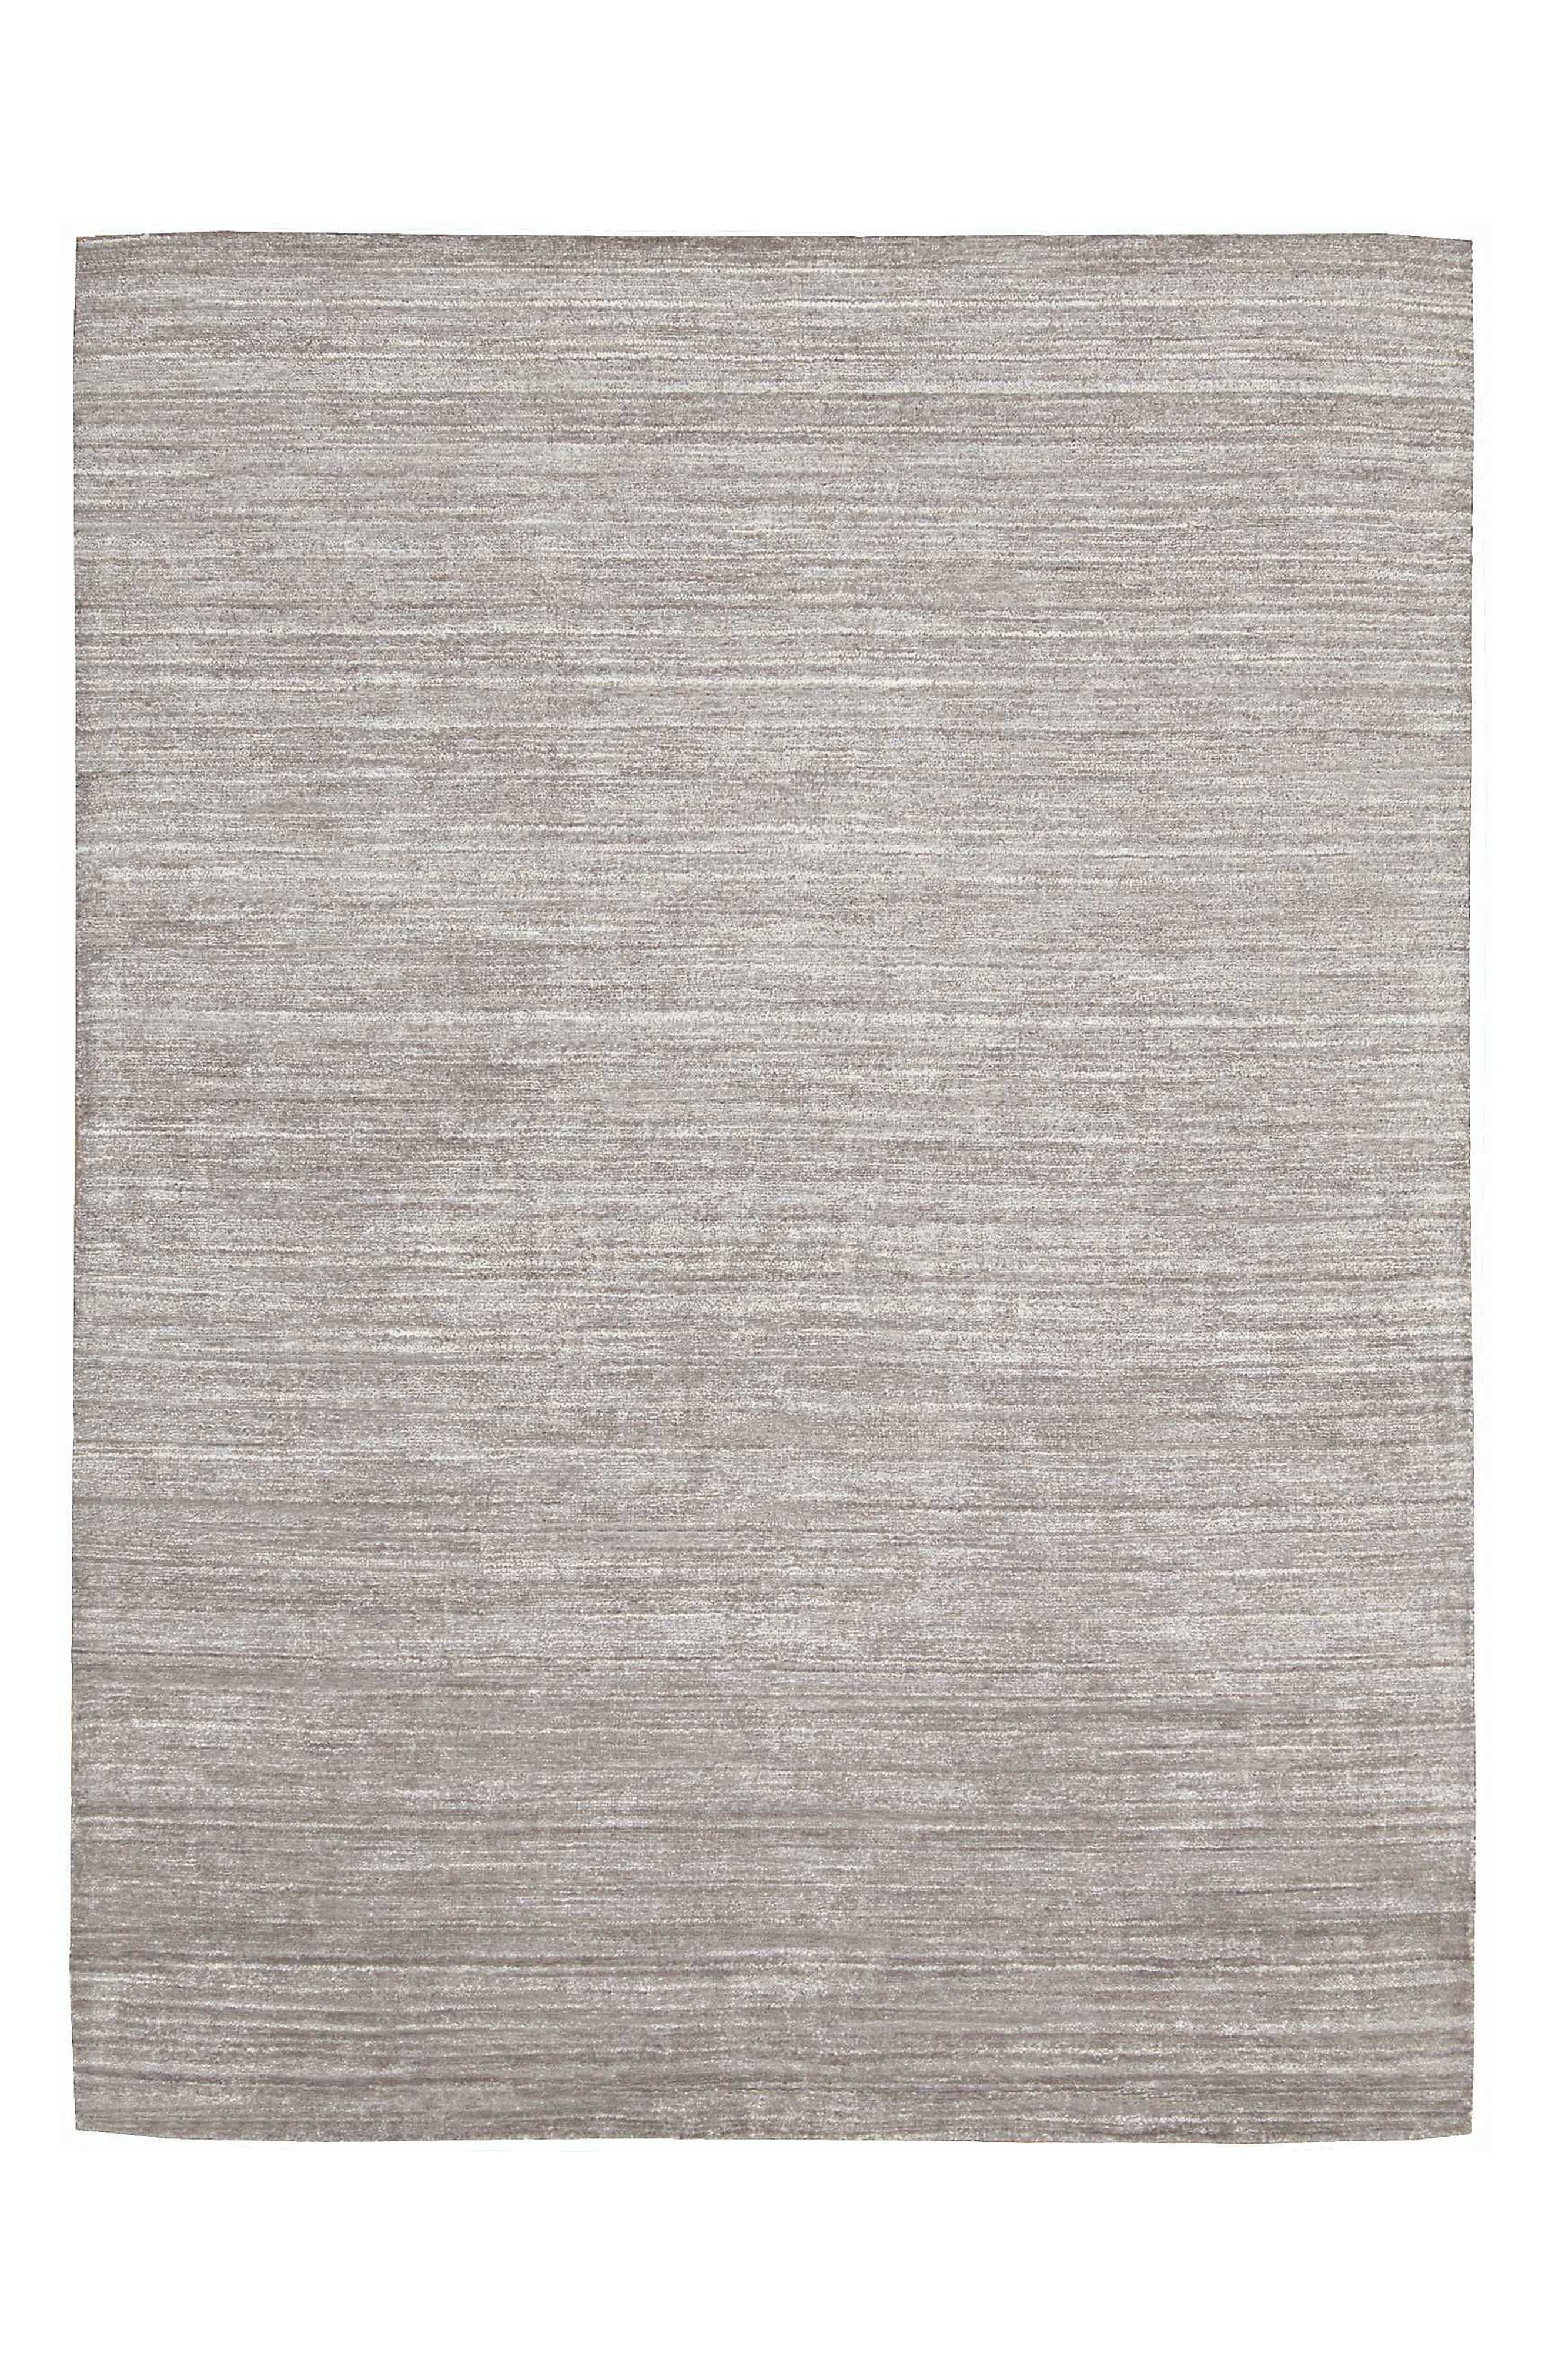 Home Shimmer Mineral Area Rug,                             Main thumbnail 2, color,